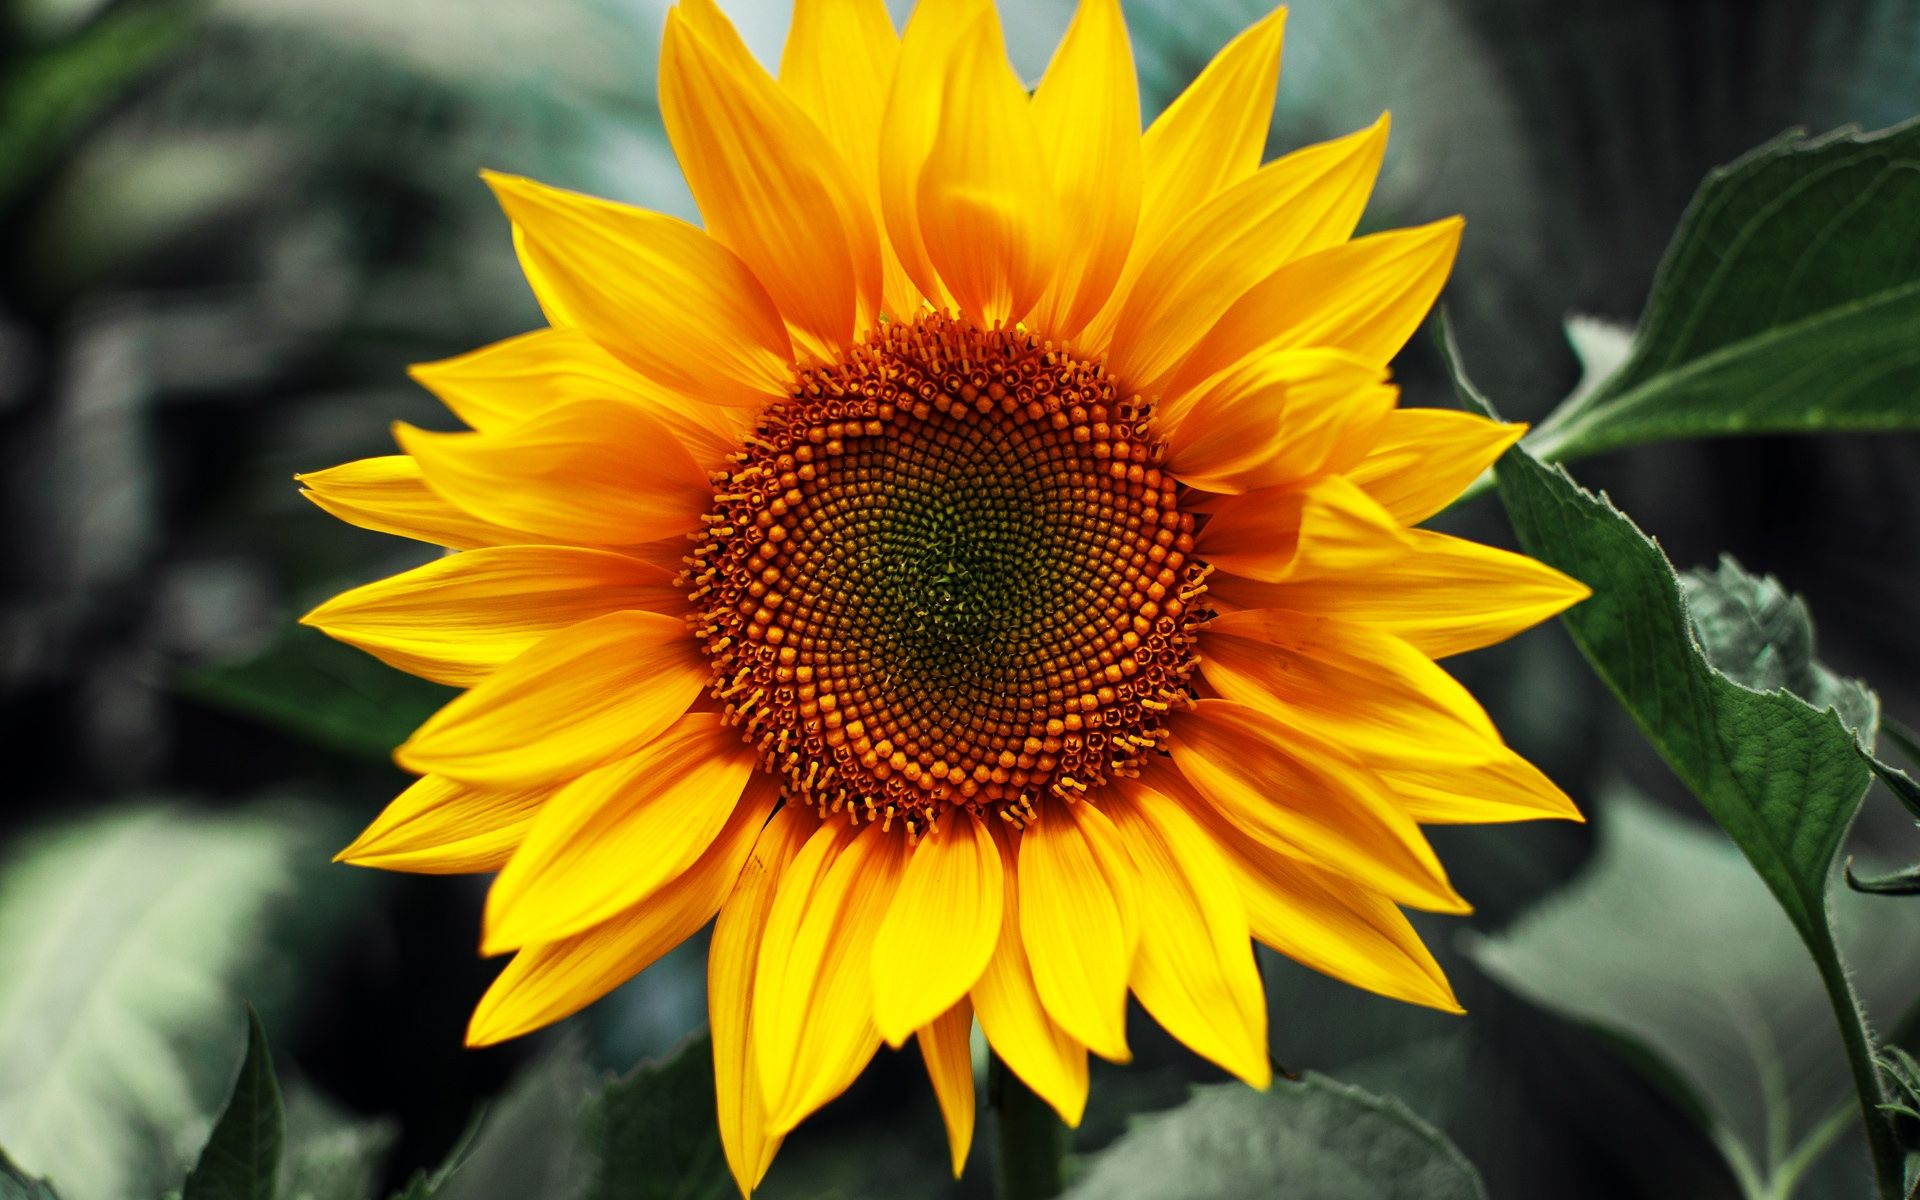 10 Ways To Manage Your Mental Health Sunflower wallpaper